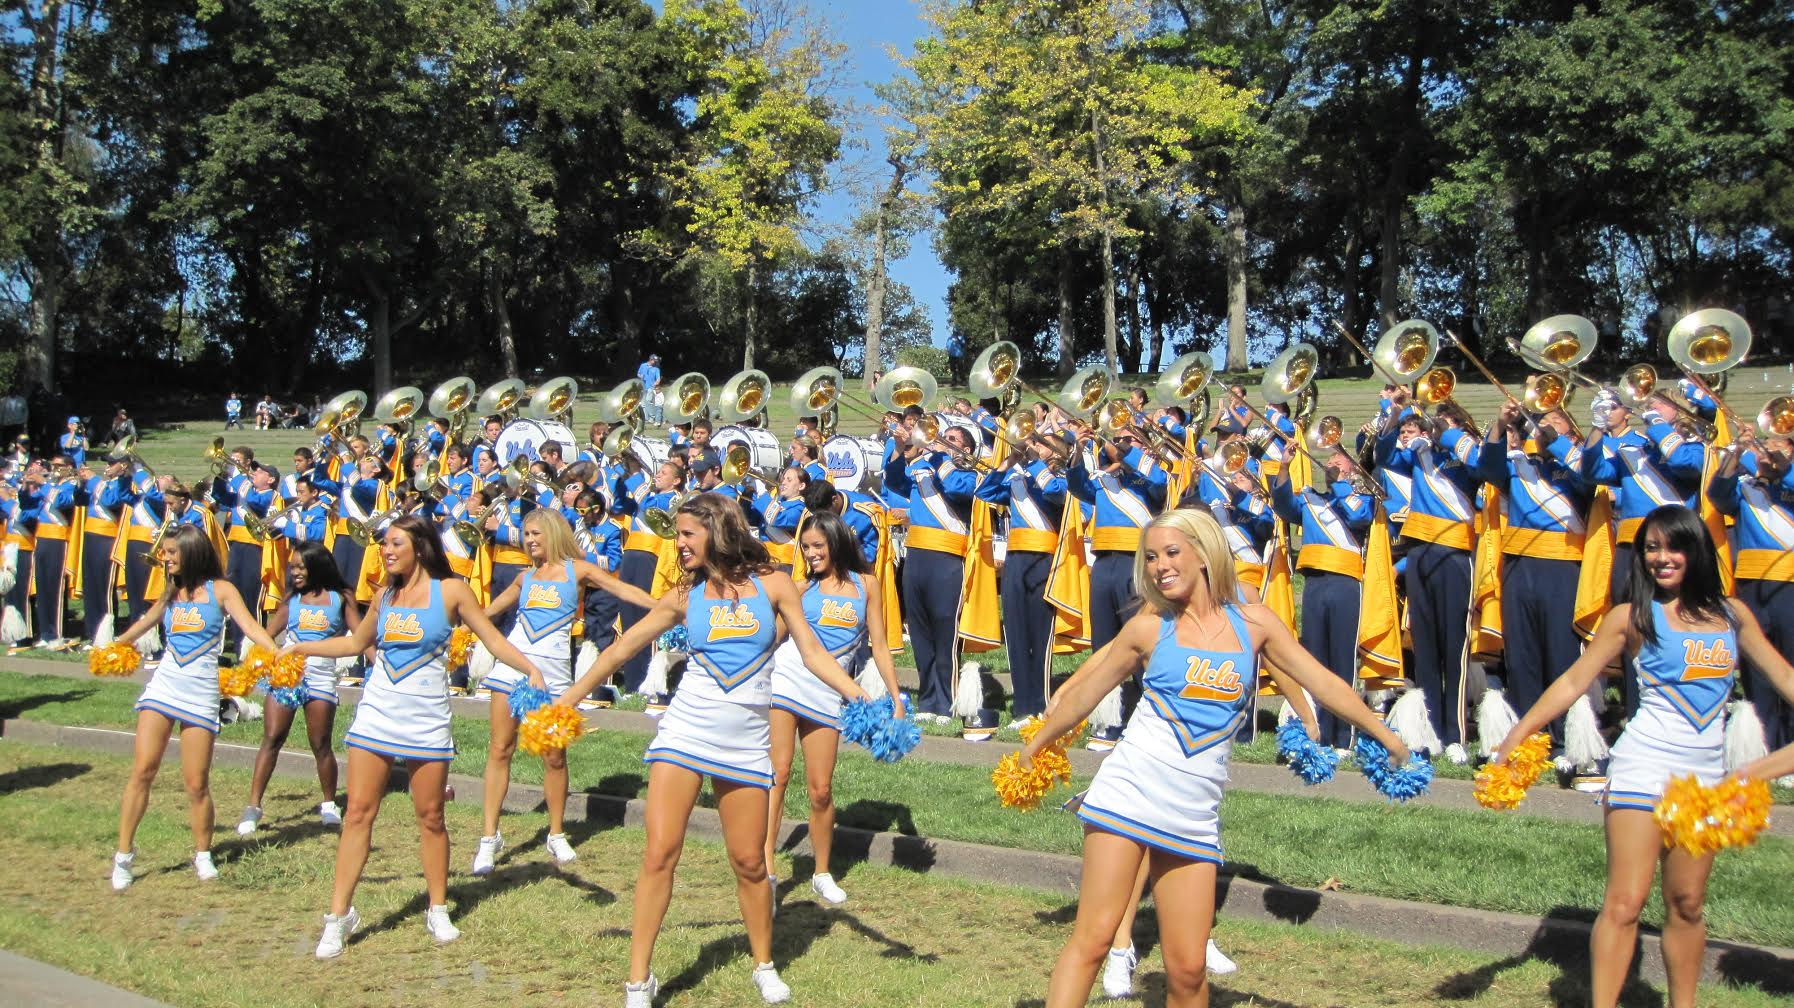 http://uclaband.com/wp-content/uploads/2015/01/unnamed2.jpg